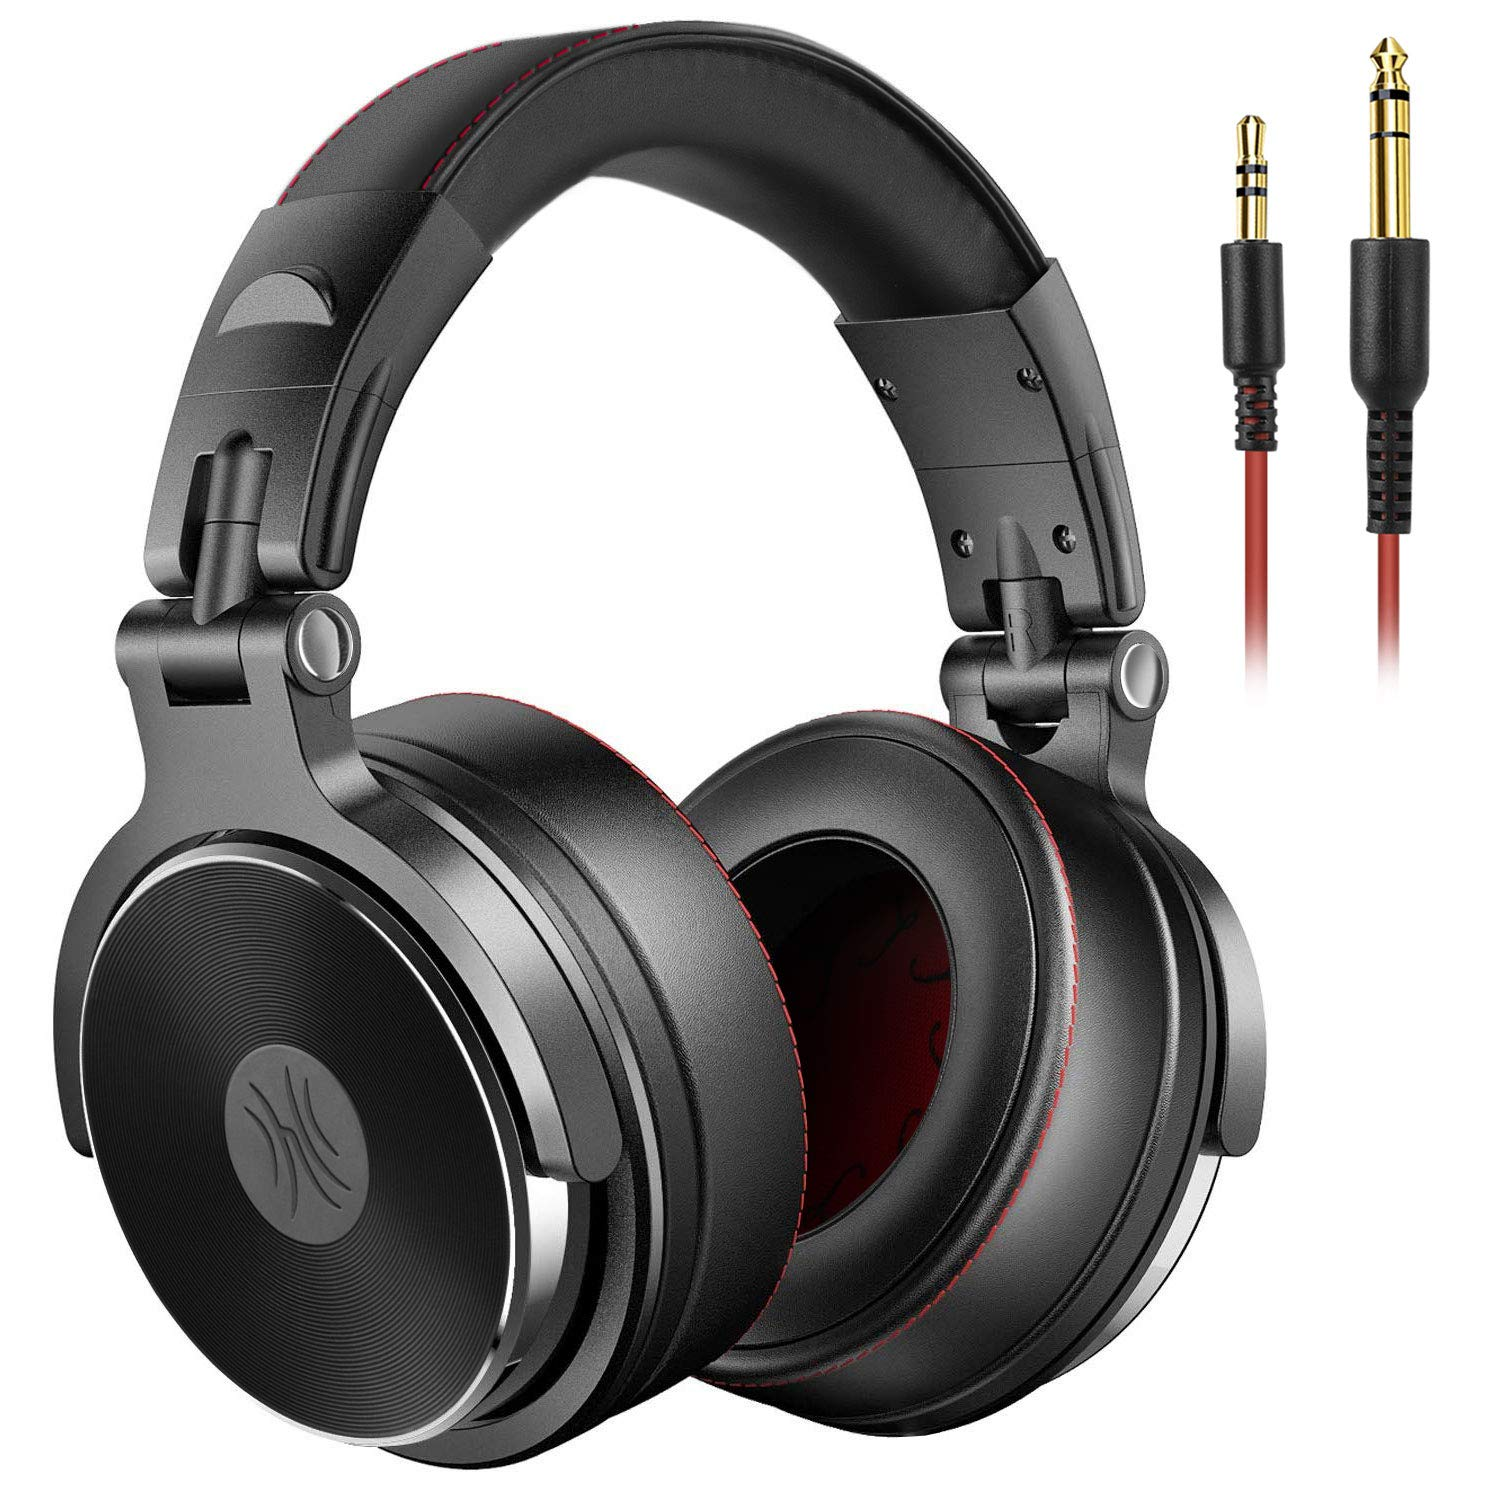 OneOdio Adapter-Free DJ Headphones for Studio Monitoring and Mixing,Sound Isolation, 90° Rotatable Housing with Top Protein Leather Earcups, 50mm Driver Unit Over Ear DJ Headsets with Mic-PRO 50